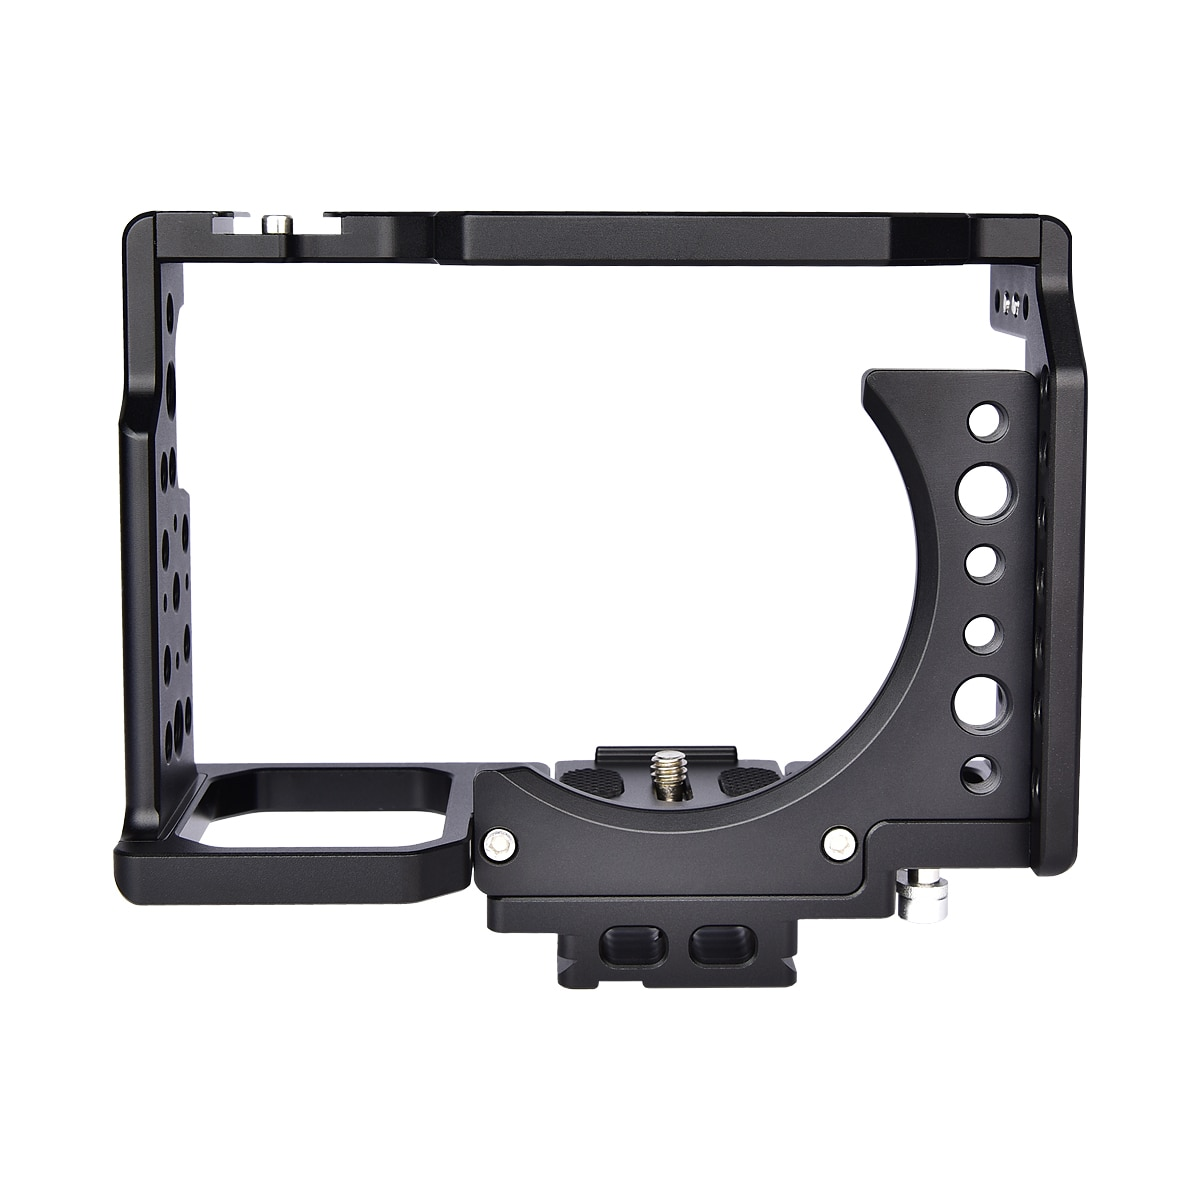 Yelangu Ca7-B Camera Cage Extension Frame for Sony A7 Series Cameras Aluminium Alloy for Sony A7 Camera Cage enlarge